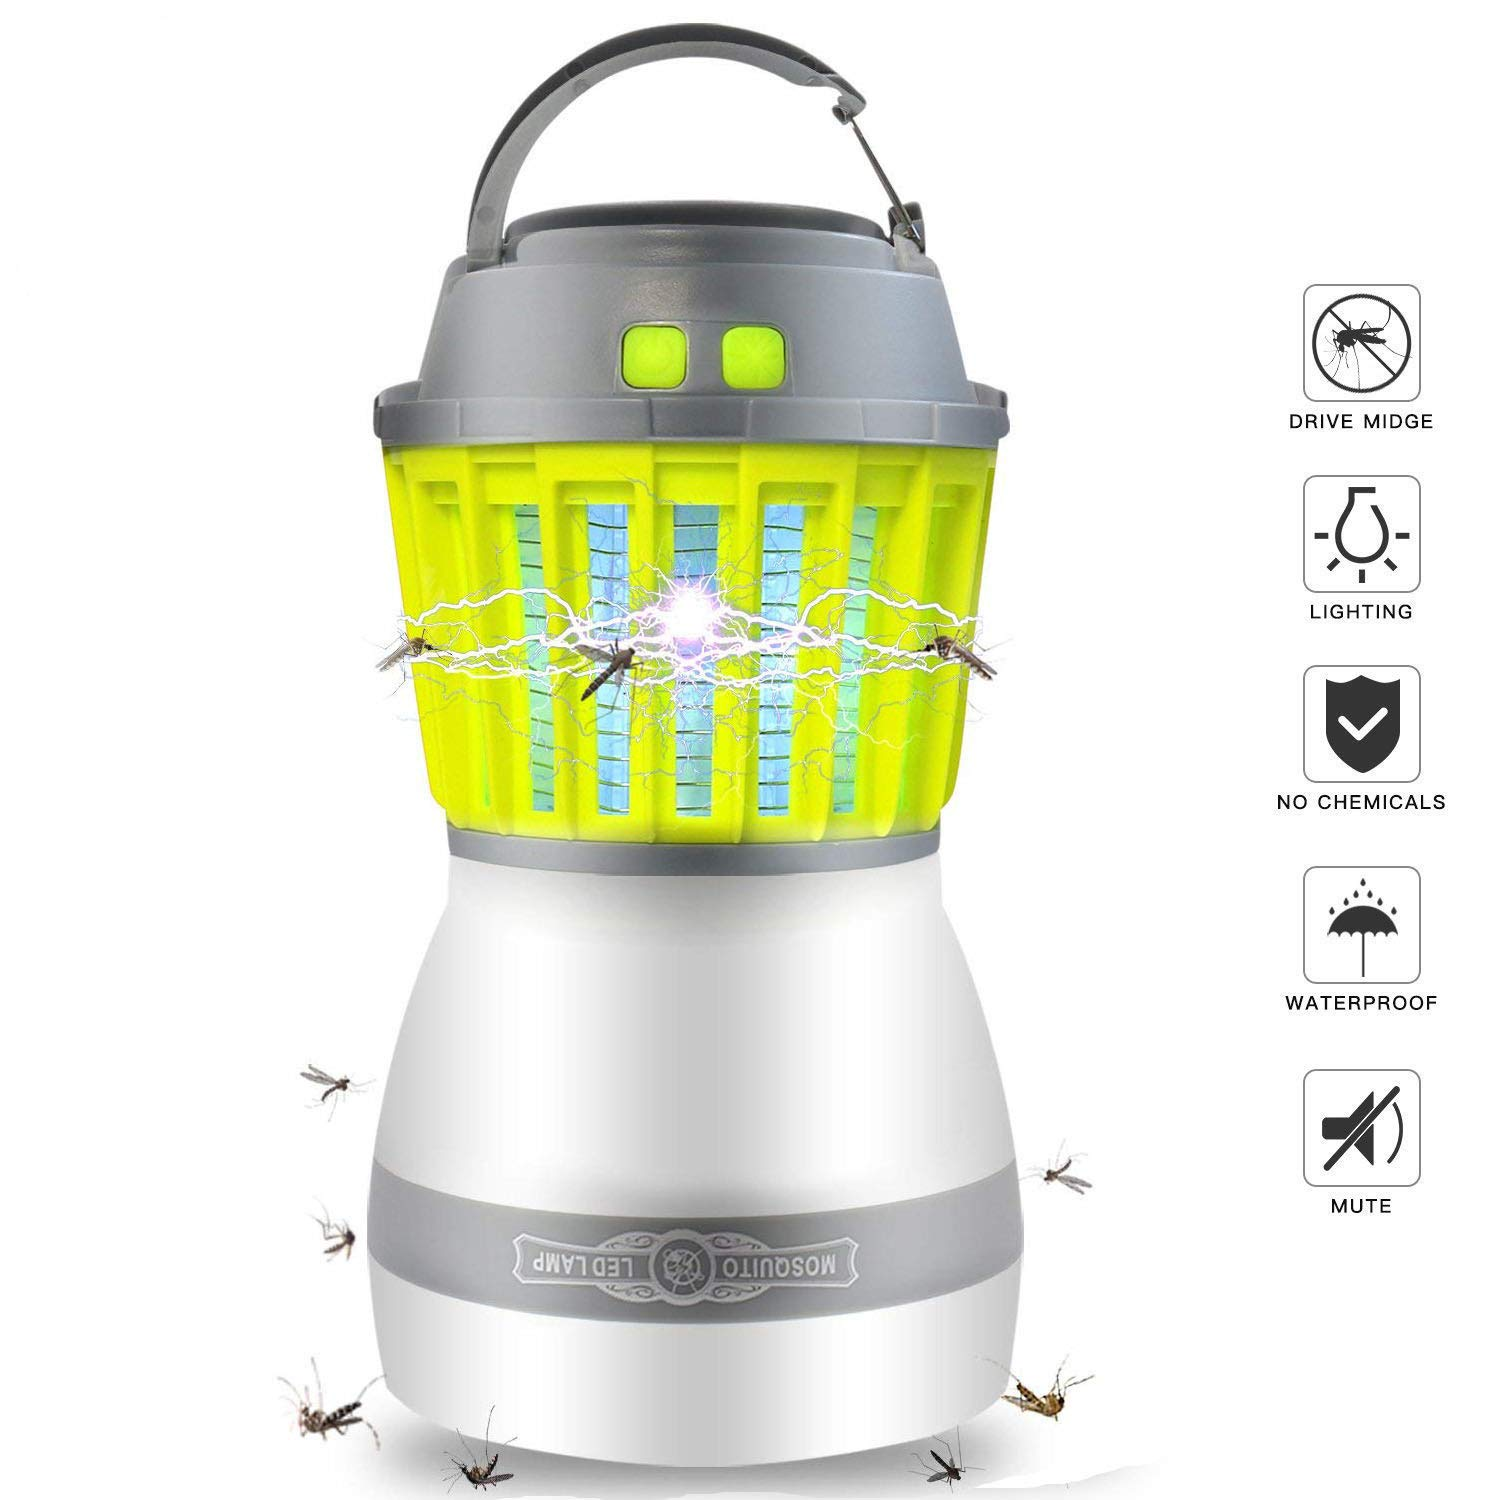 Bug Zapper & Camping Lantern 2 in 1, Electric Mosquito Trap Killer with LED Light, IP67 Waterproof Rechargable Via USB - Cordless Portable Camping Accessories for The Indoor & Outdoor by FamFun